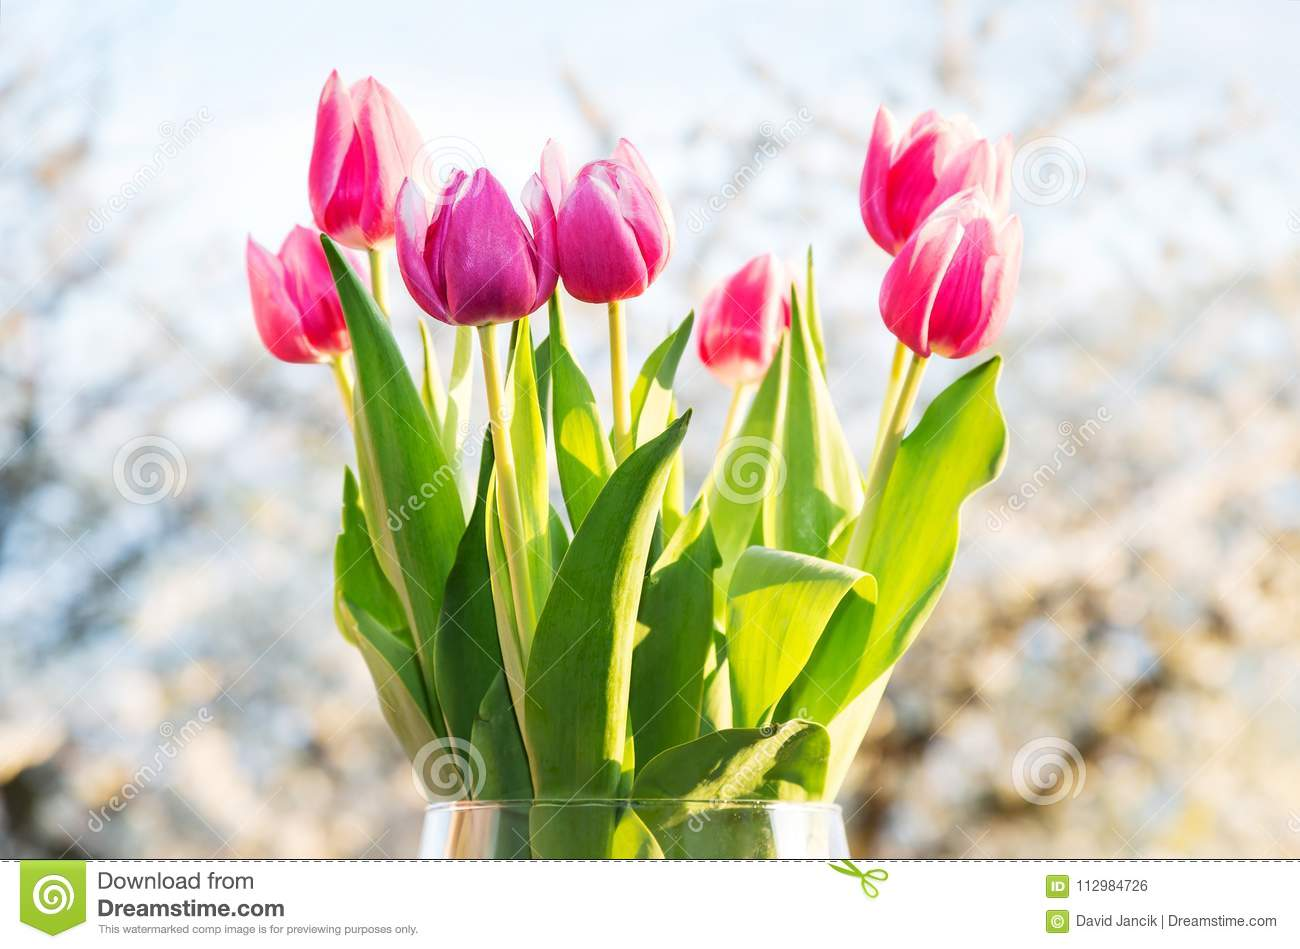 Flowering tulips with cherry tree in background